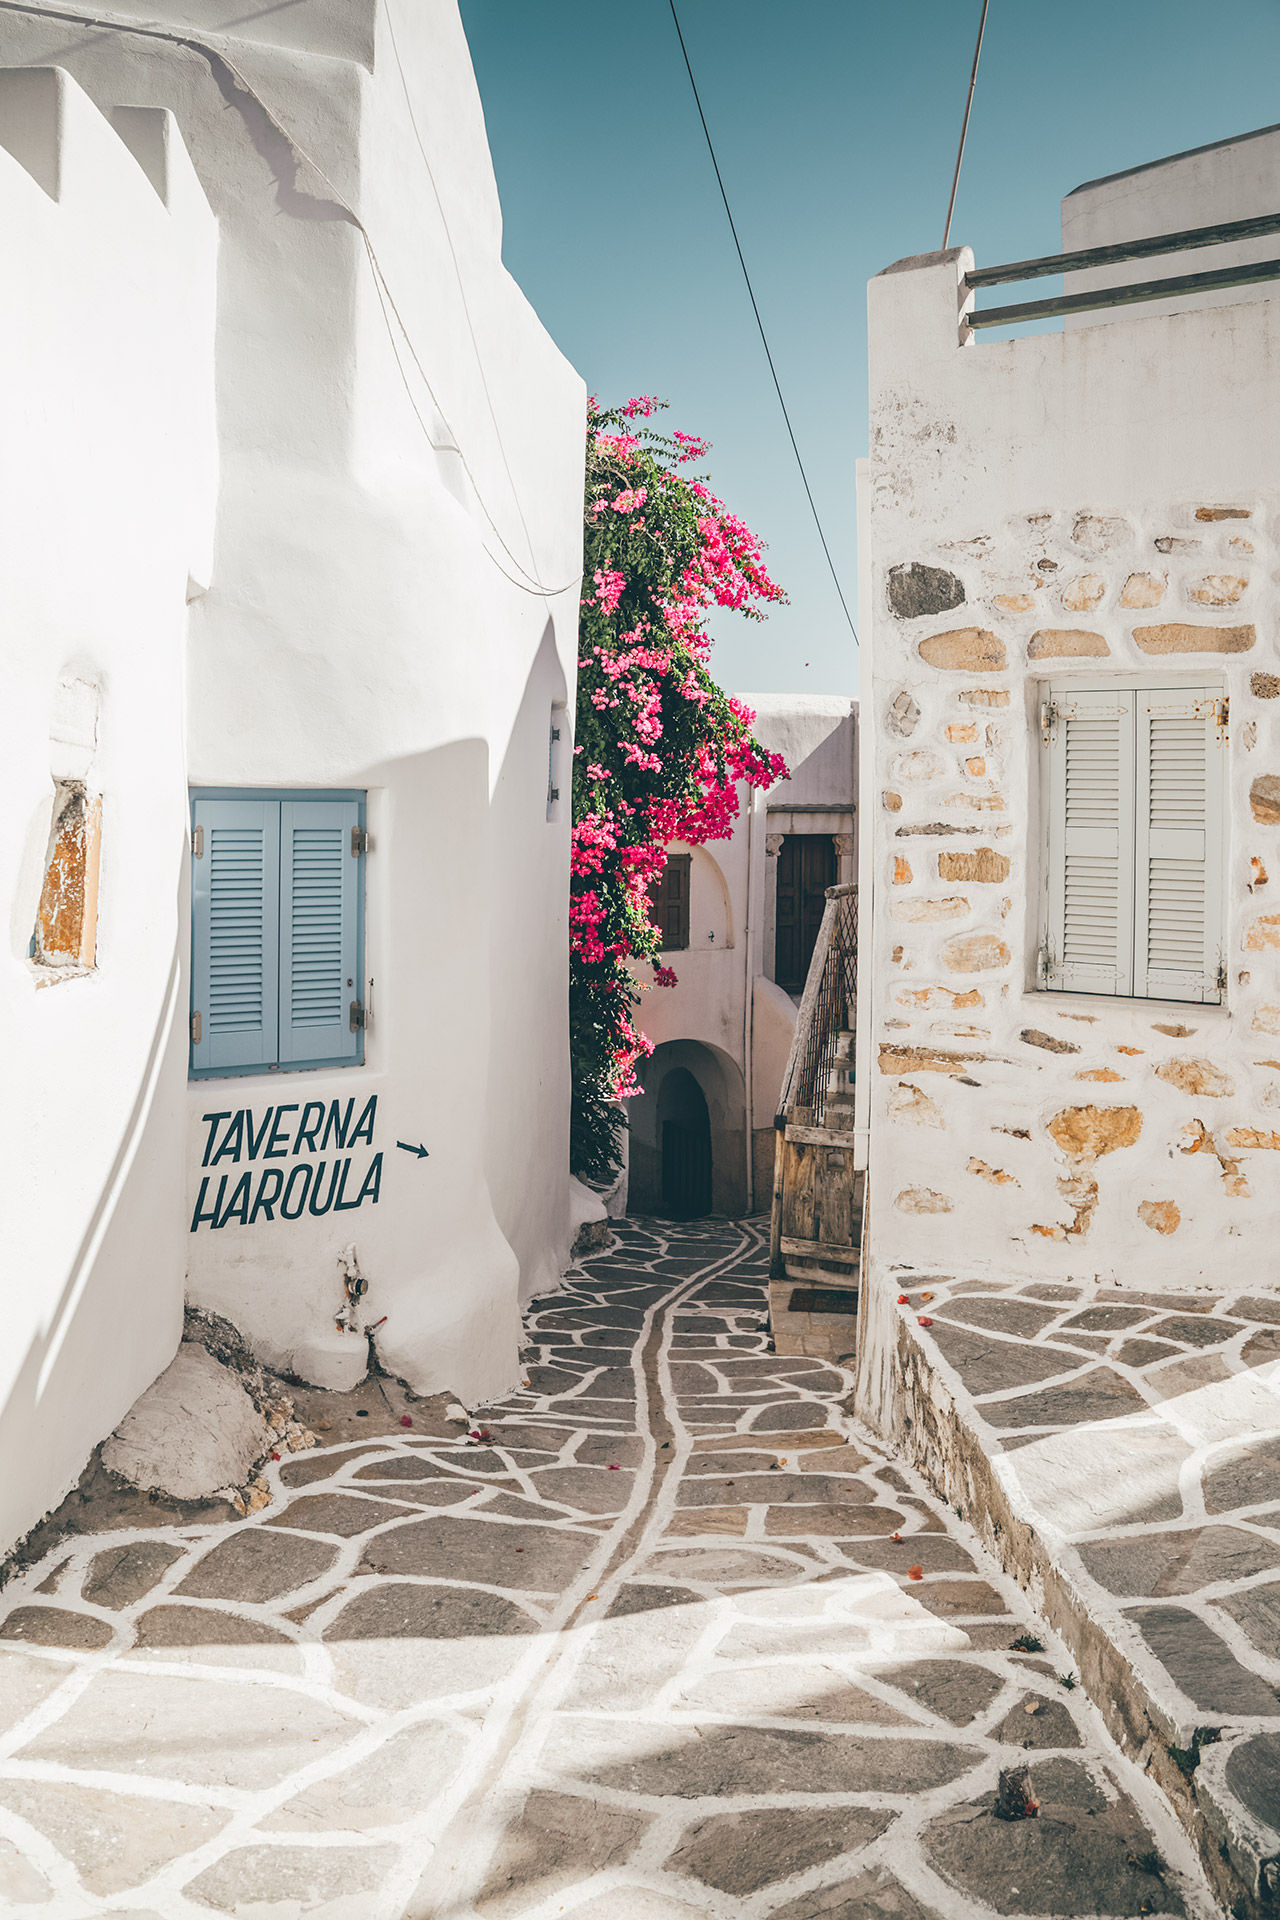 The Cycladic theme of sugar-cube houses, flowers and tiny churches continues in the villages of Paros